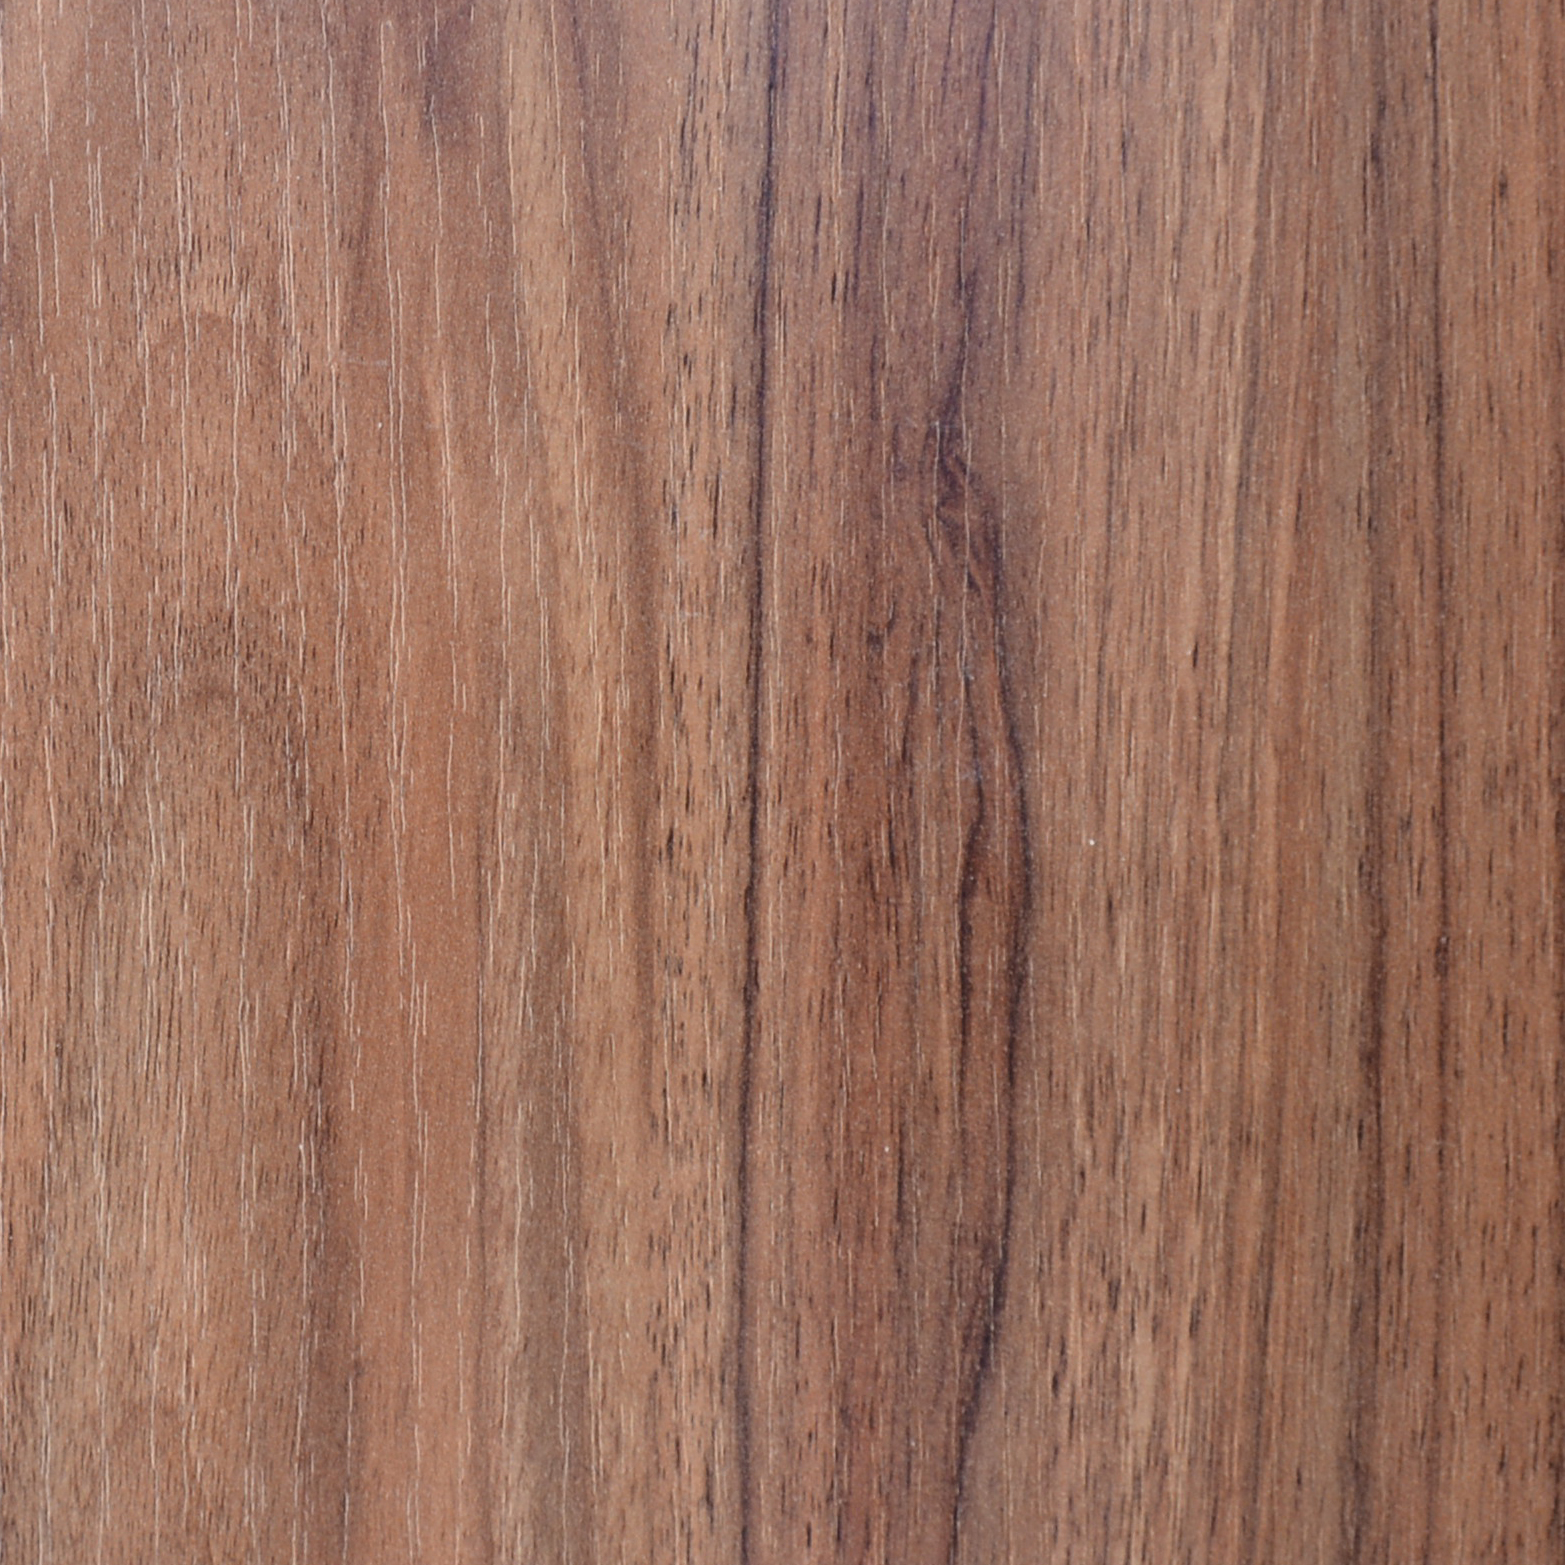 Sample of Sienna, a standard finish for Creative Wood's FOCUS furniture collection